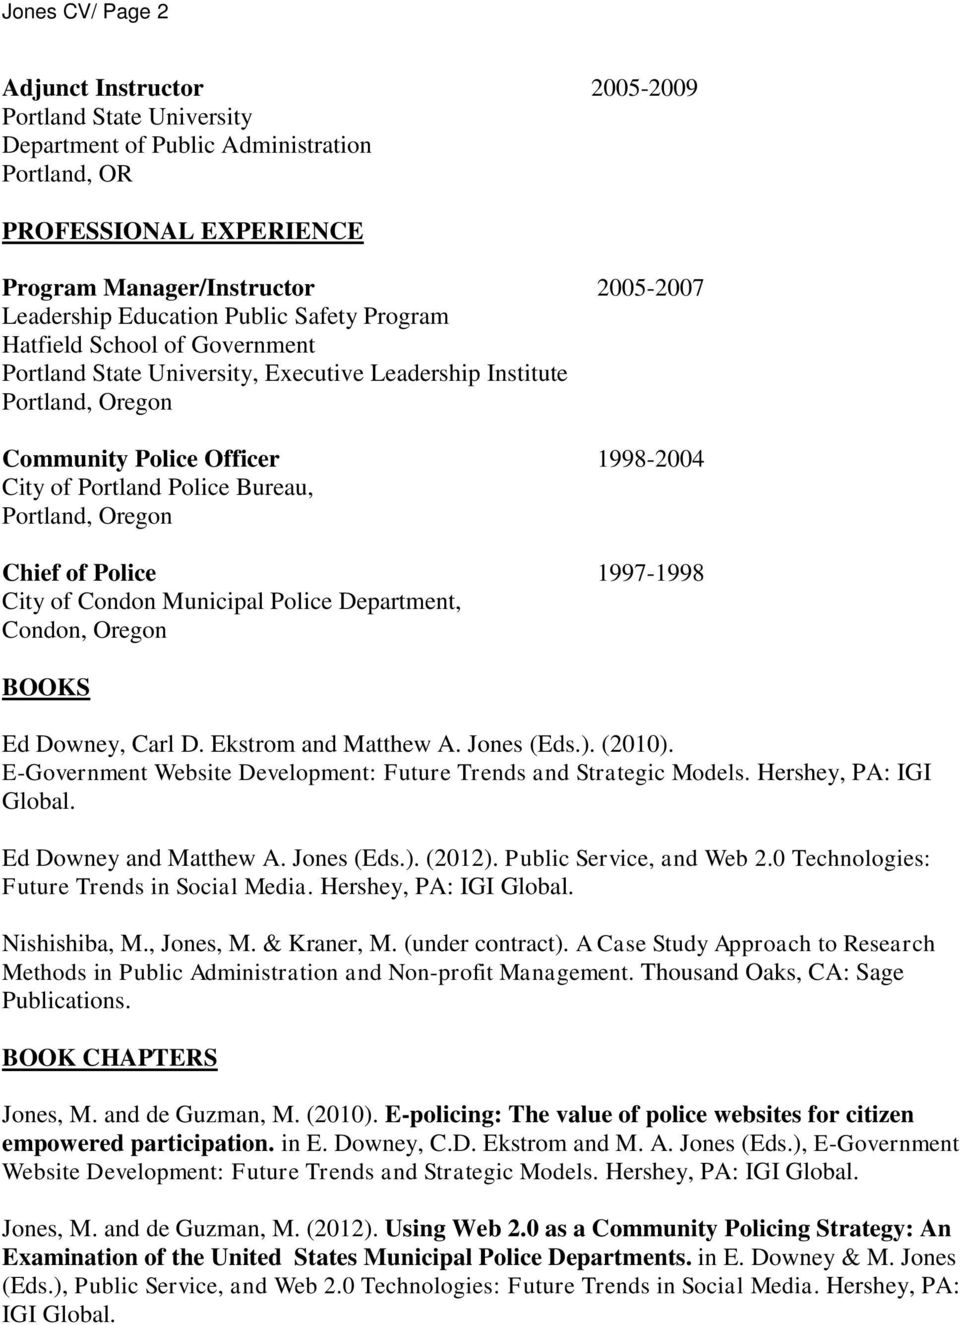 Bureau, Portland, Oregon Chief of Police 1997-1998 City of Condon Municipal Police Department, Condon, Oregon BOOKS Ed Downey, Carl D. Ekstrom and Matthew A. Jones (Eds.). (2010).